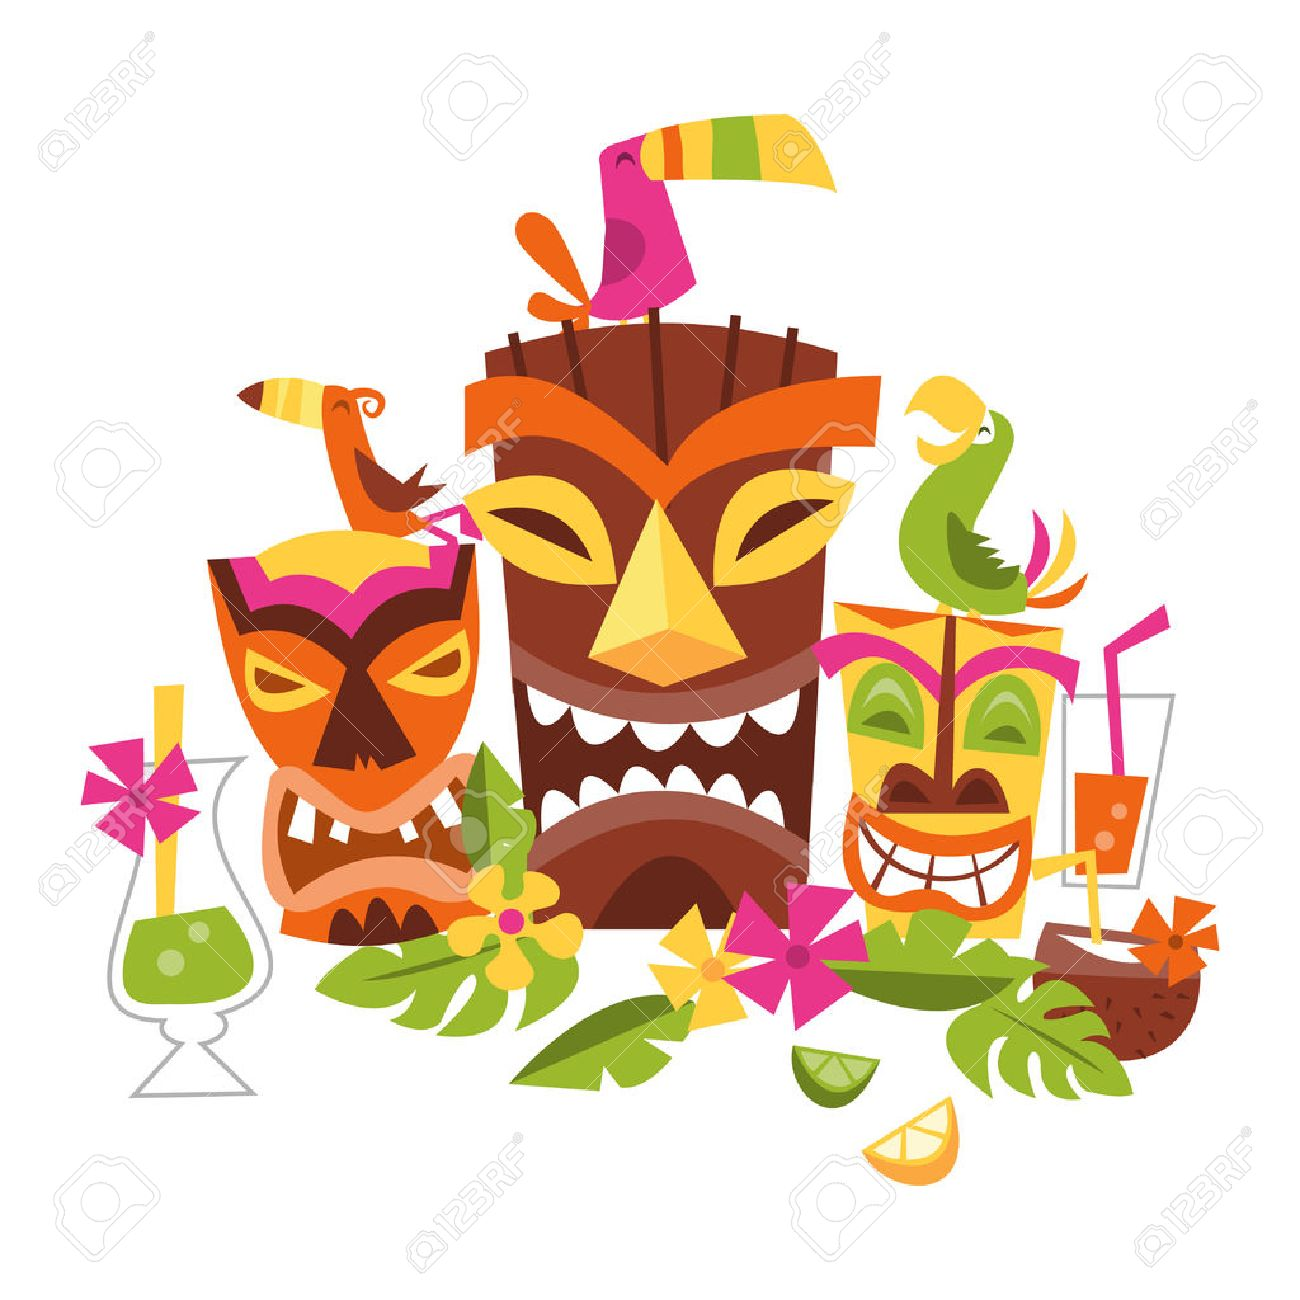 Three grimacing tiki party masks surrounded by leaves and drinks a three grimacing tiki party masks surrounded by leaves and drinks a bird stands on the brown mask to the left is a yellow tiki mask with a green bird on stopboris Images